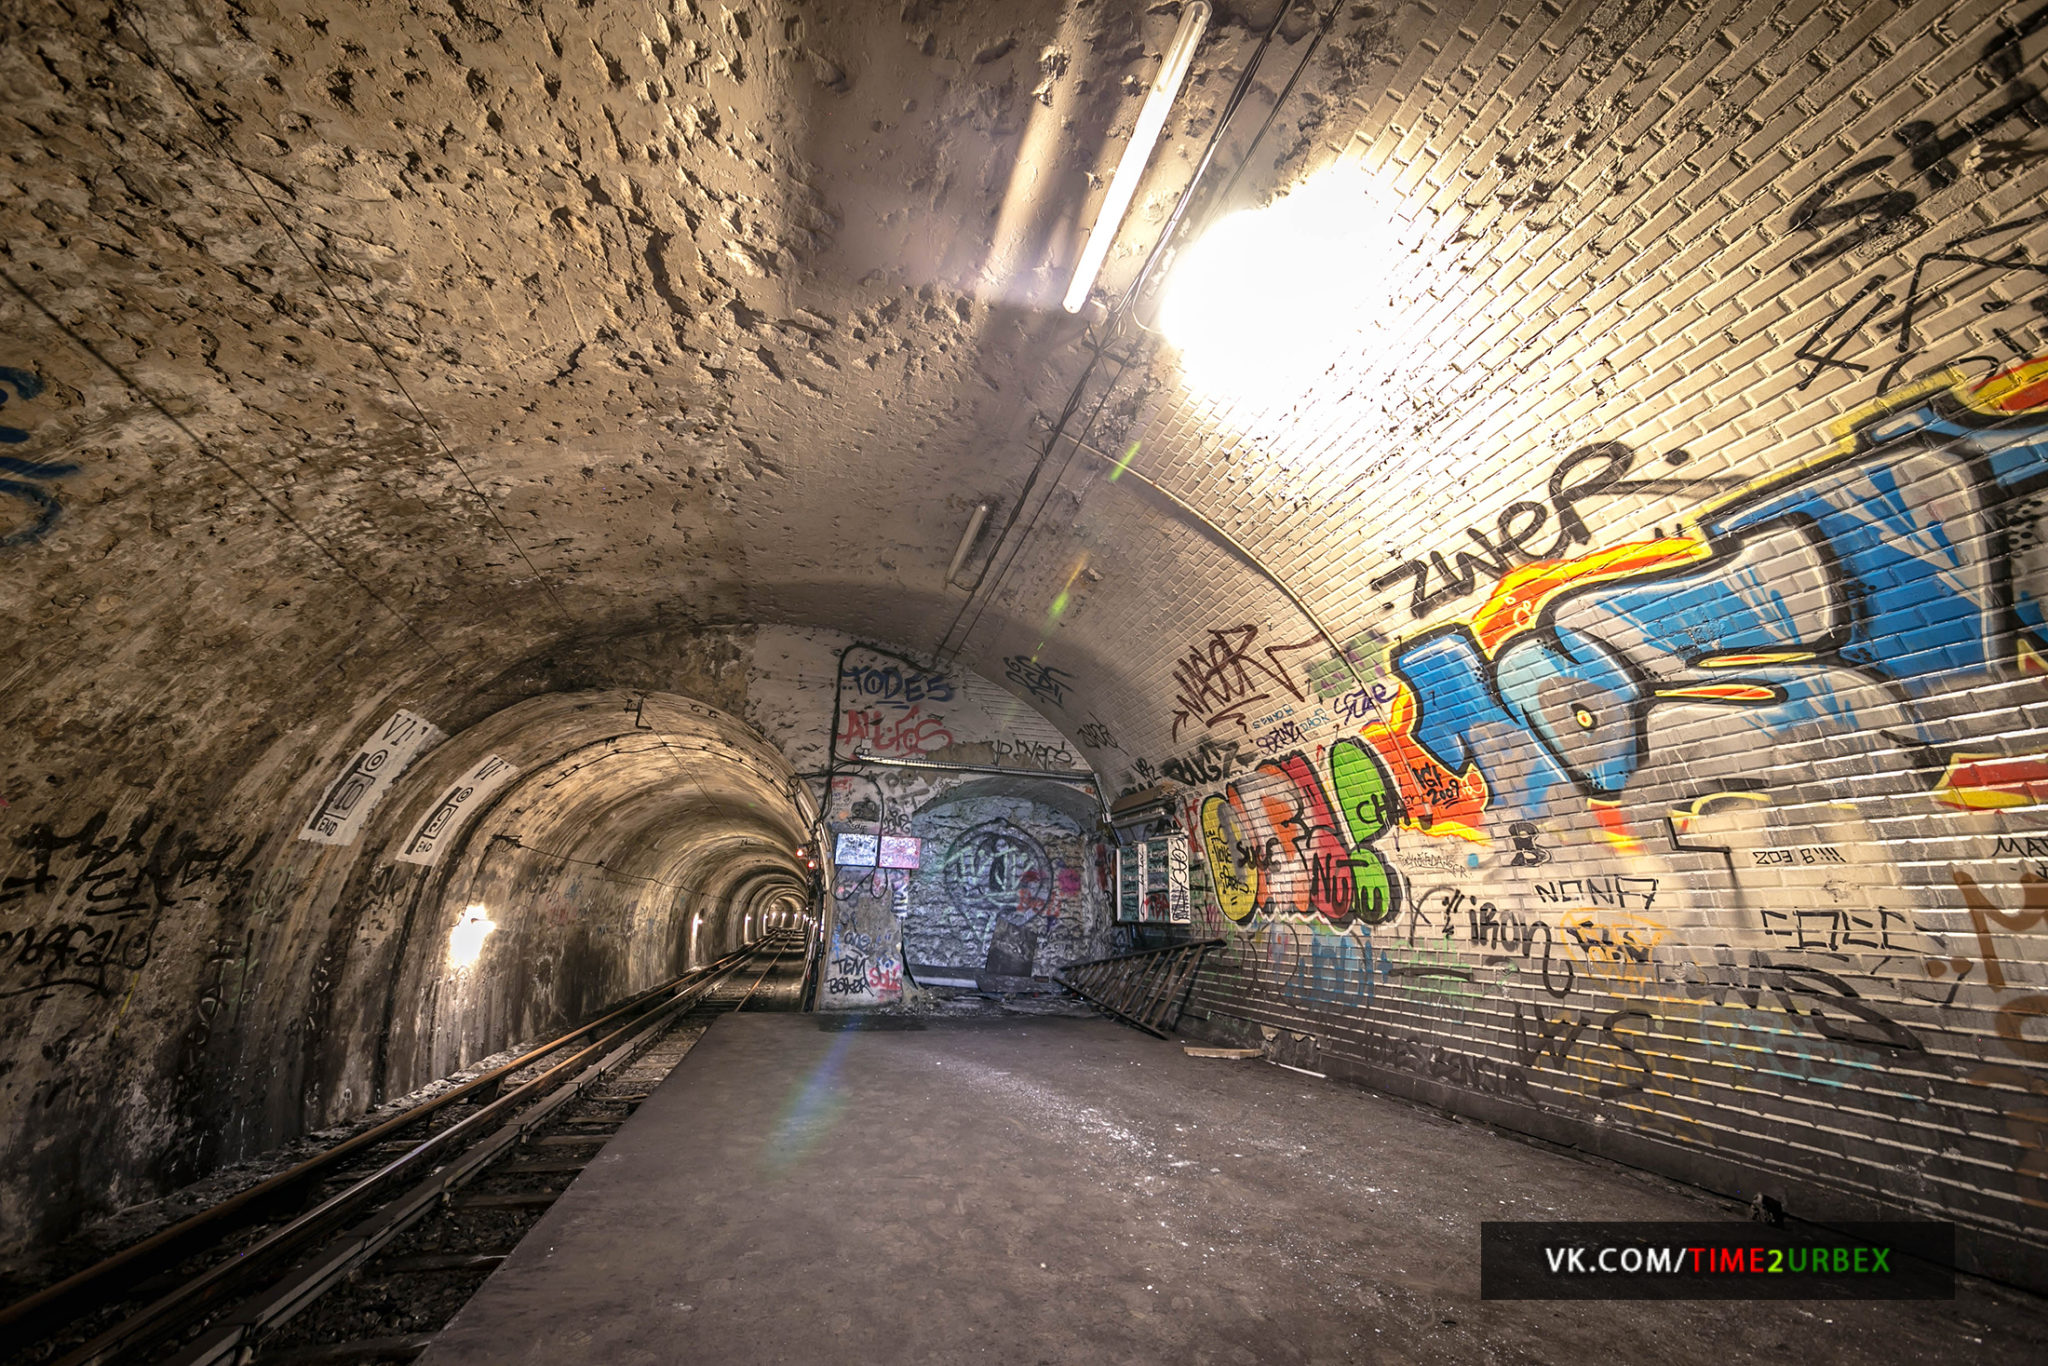 59 7 GHOST STATIONS OF THE PARIS METRO AND HOW TO GET INTO THE ILLEGALLY + UNUSUAL TUNNELS + RER